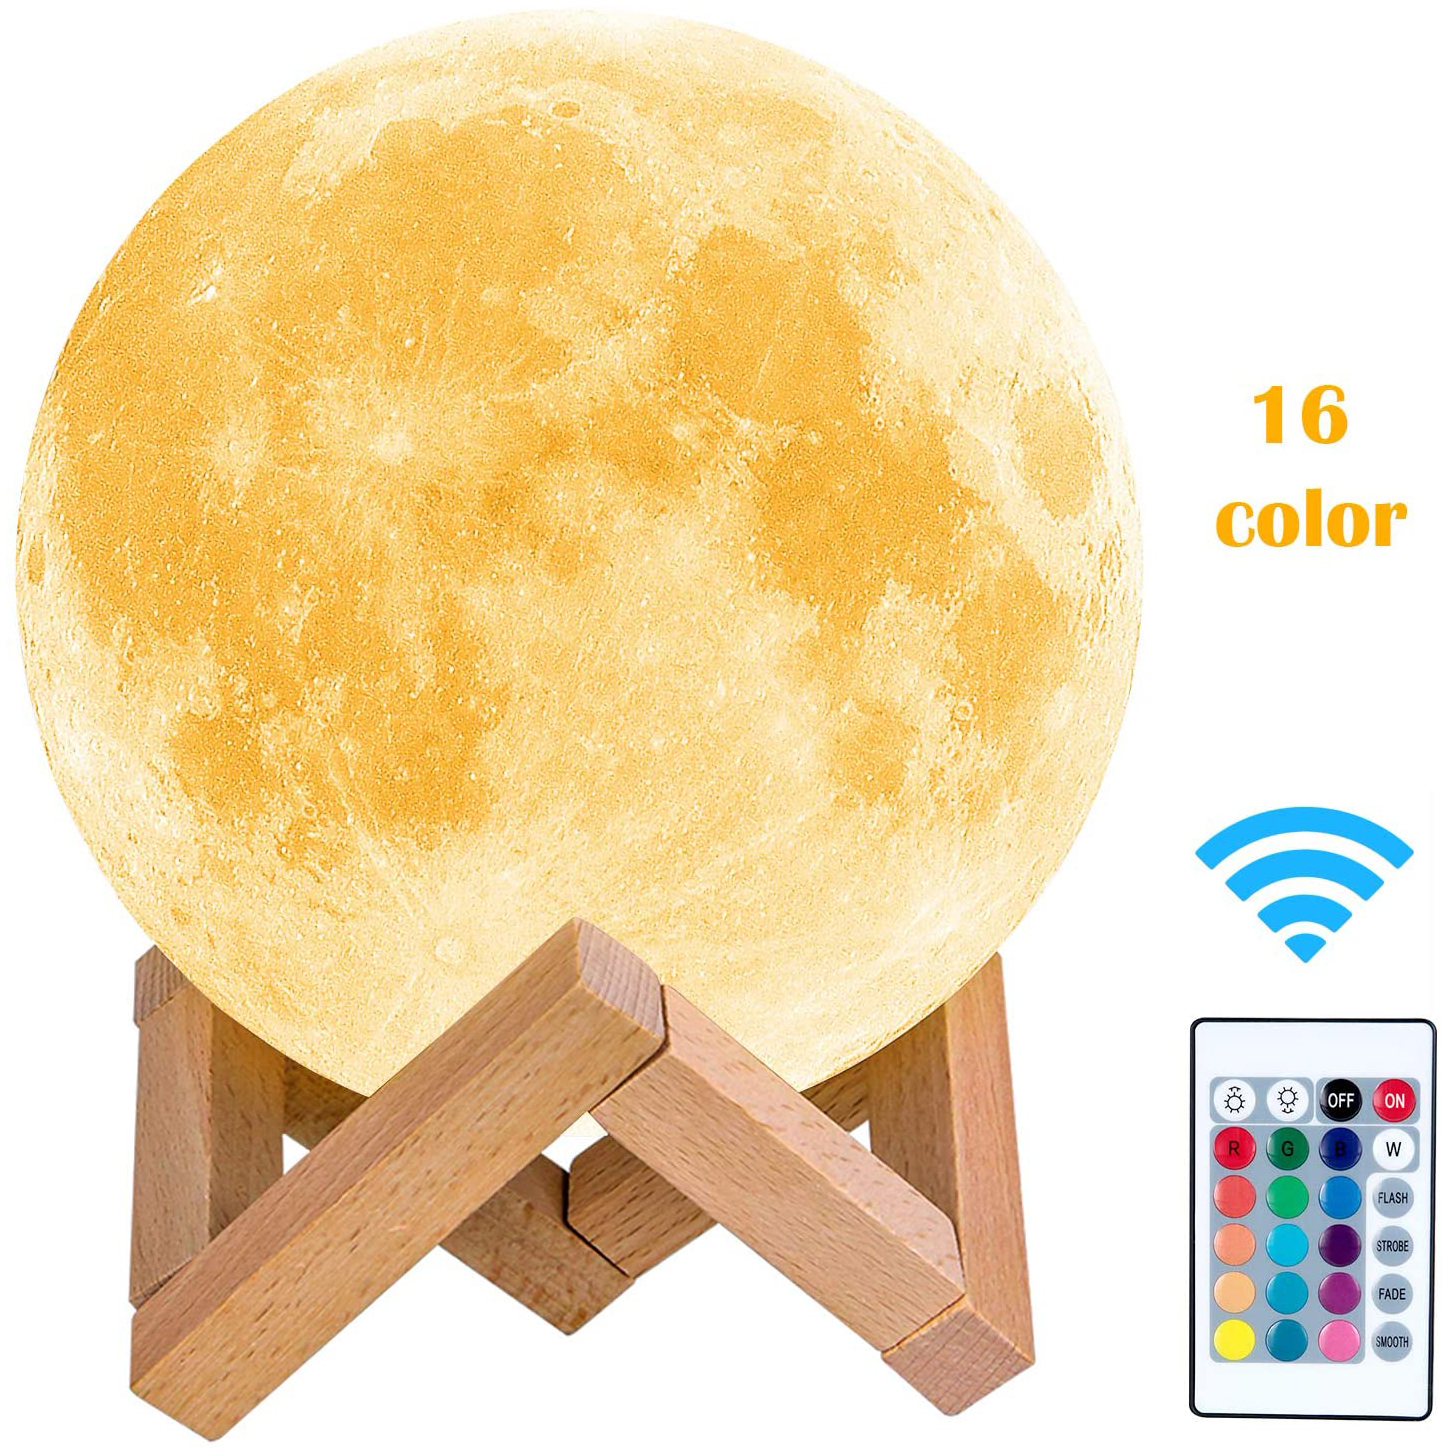 LEADLY Moon Lamp Moon Light Night Light USB Charging Touch Control Brightness 3D Printed Warm And Cool White Lunar Lamp